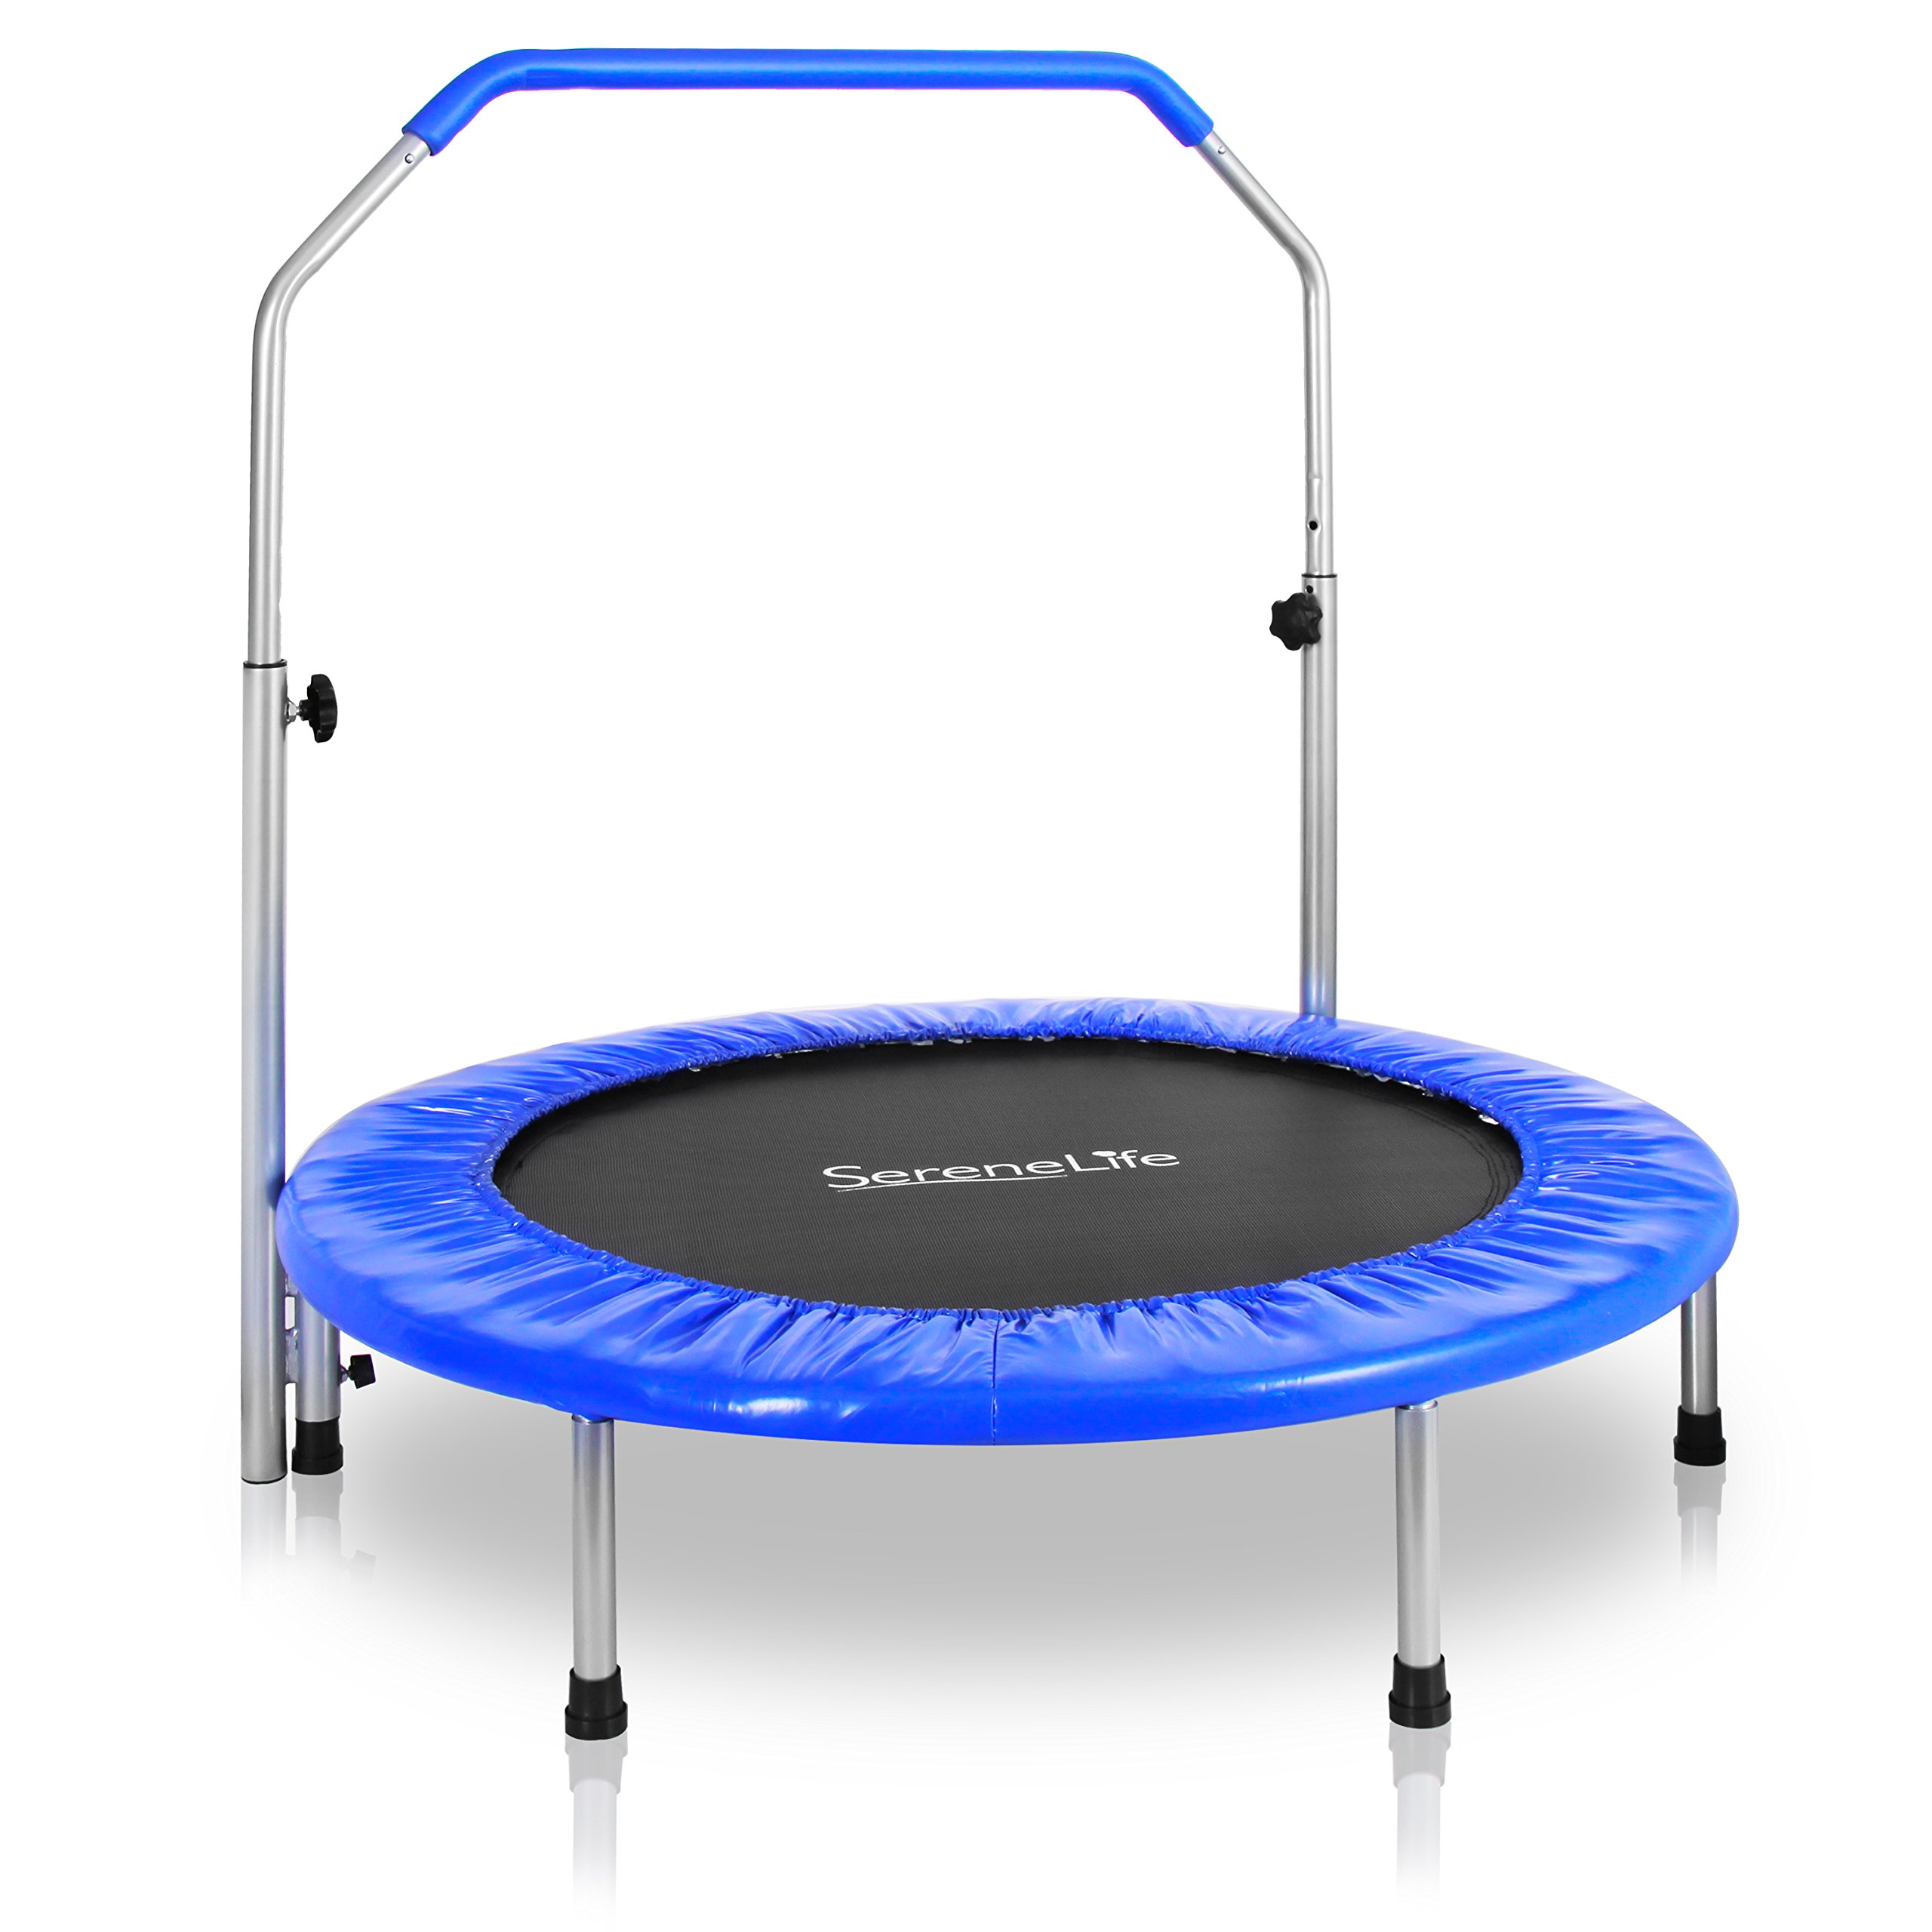 SereneLife Portable & Foldable Trampoline - 40'' In-Home Mini Rebounder with Adjustable Handrail, Fitness Body Exercise - SLSPT409